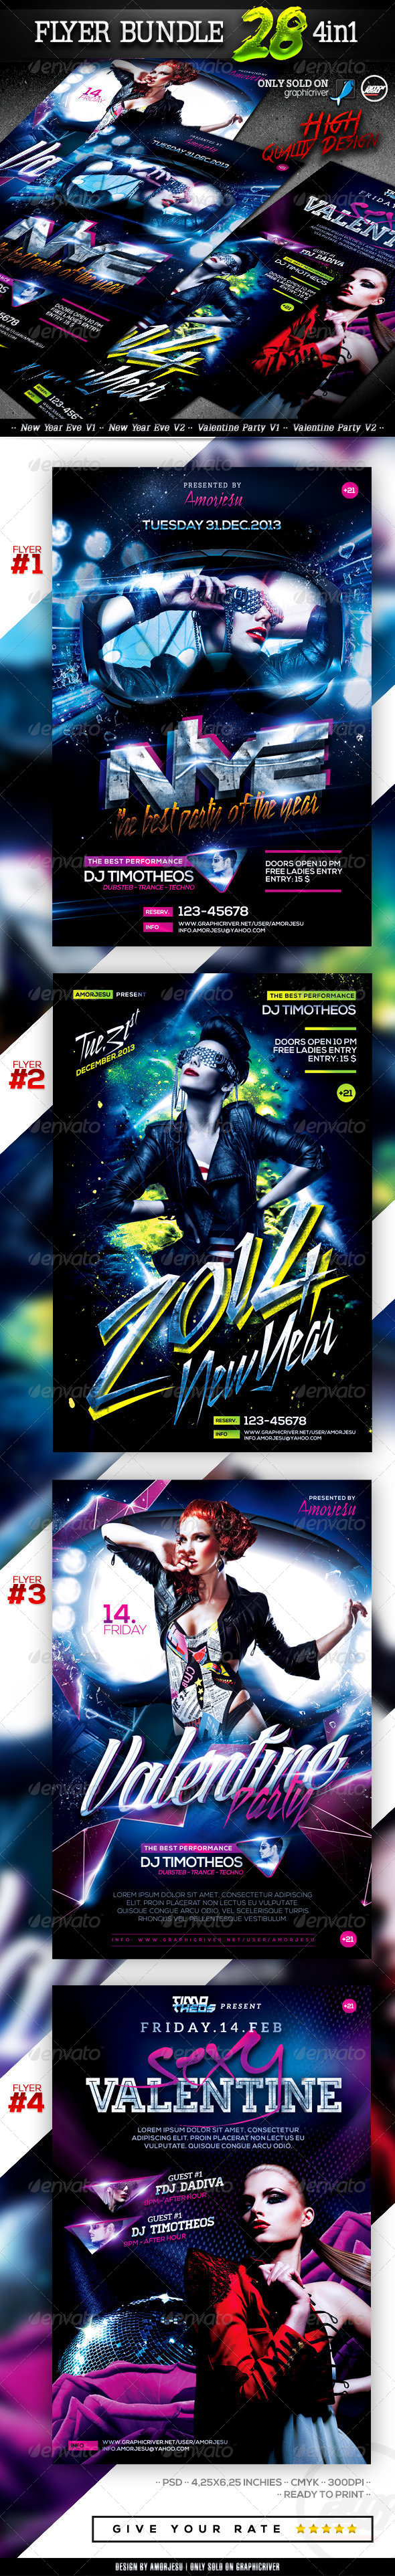 Flyer Bundle Vol28 - 4 in 1 - Clubs & Parties Events